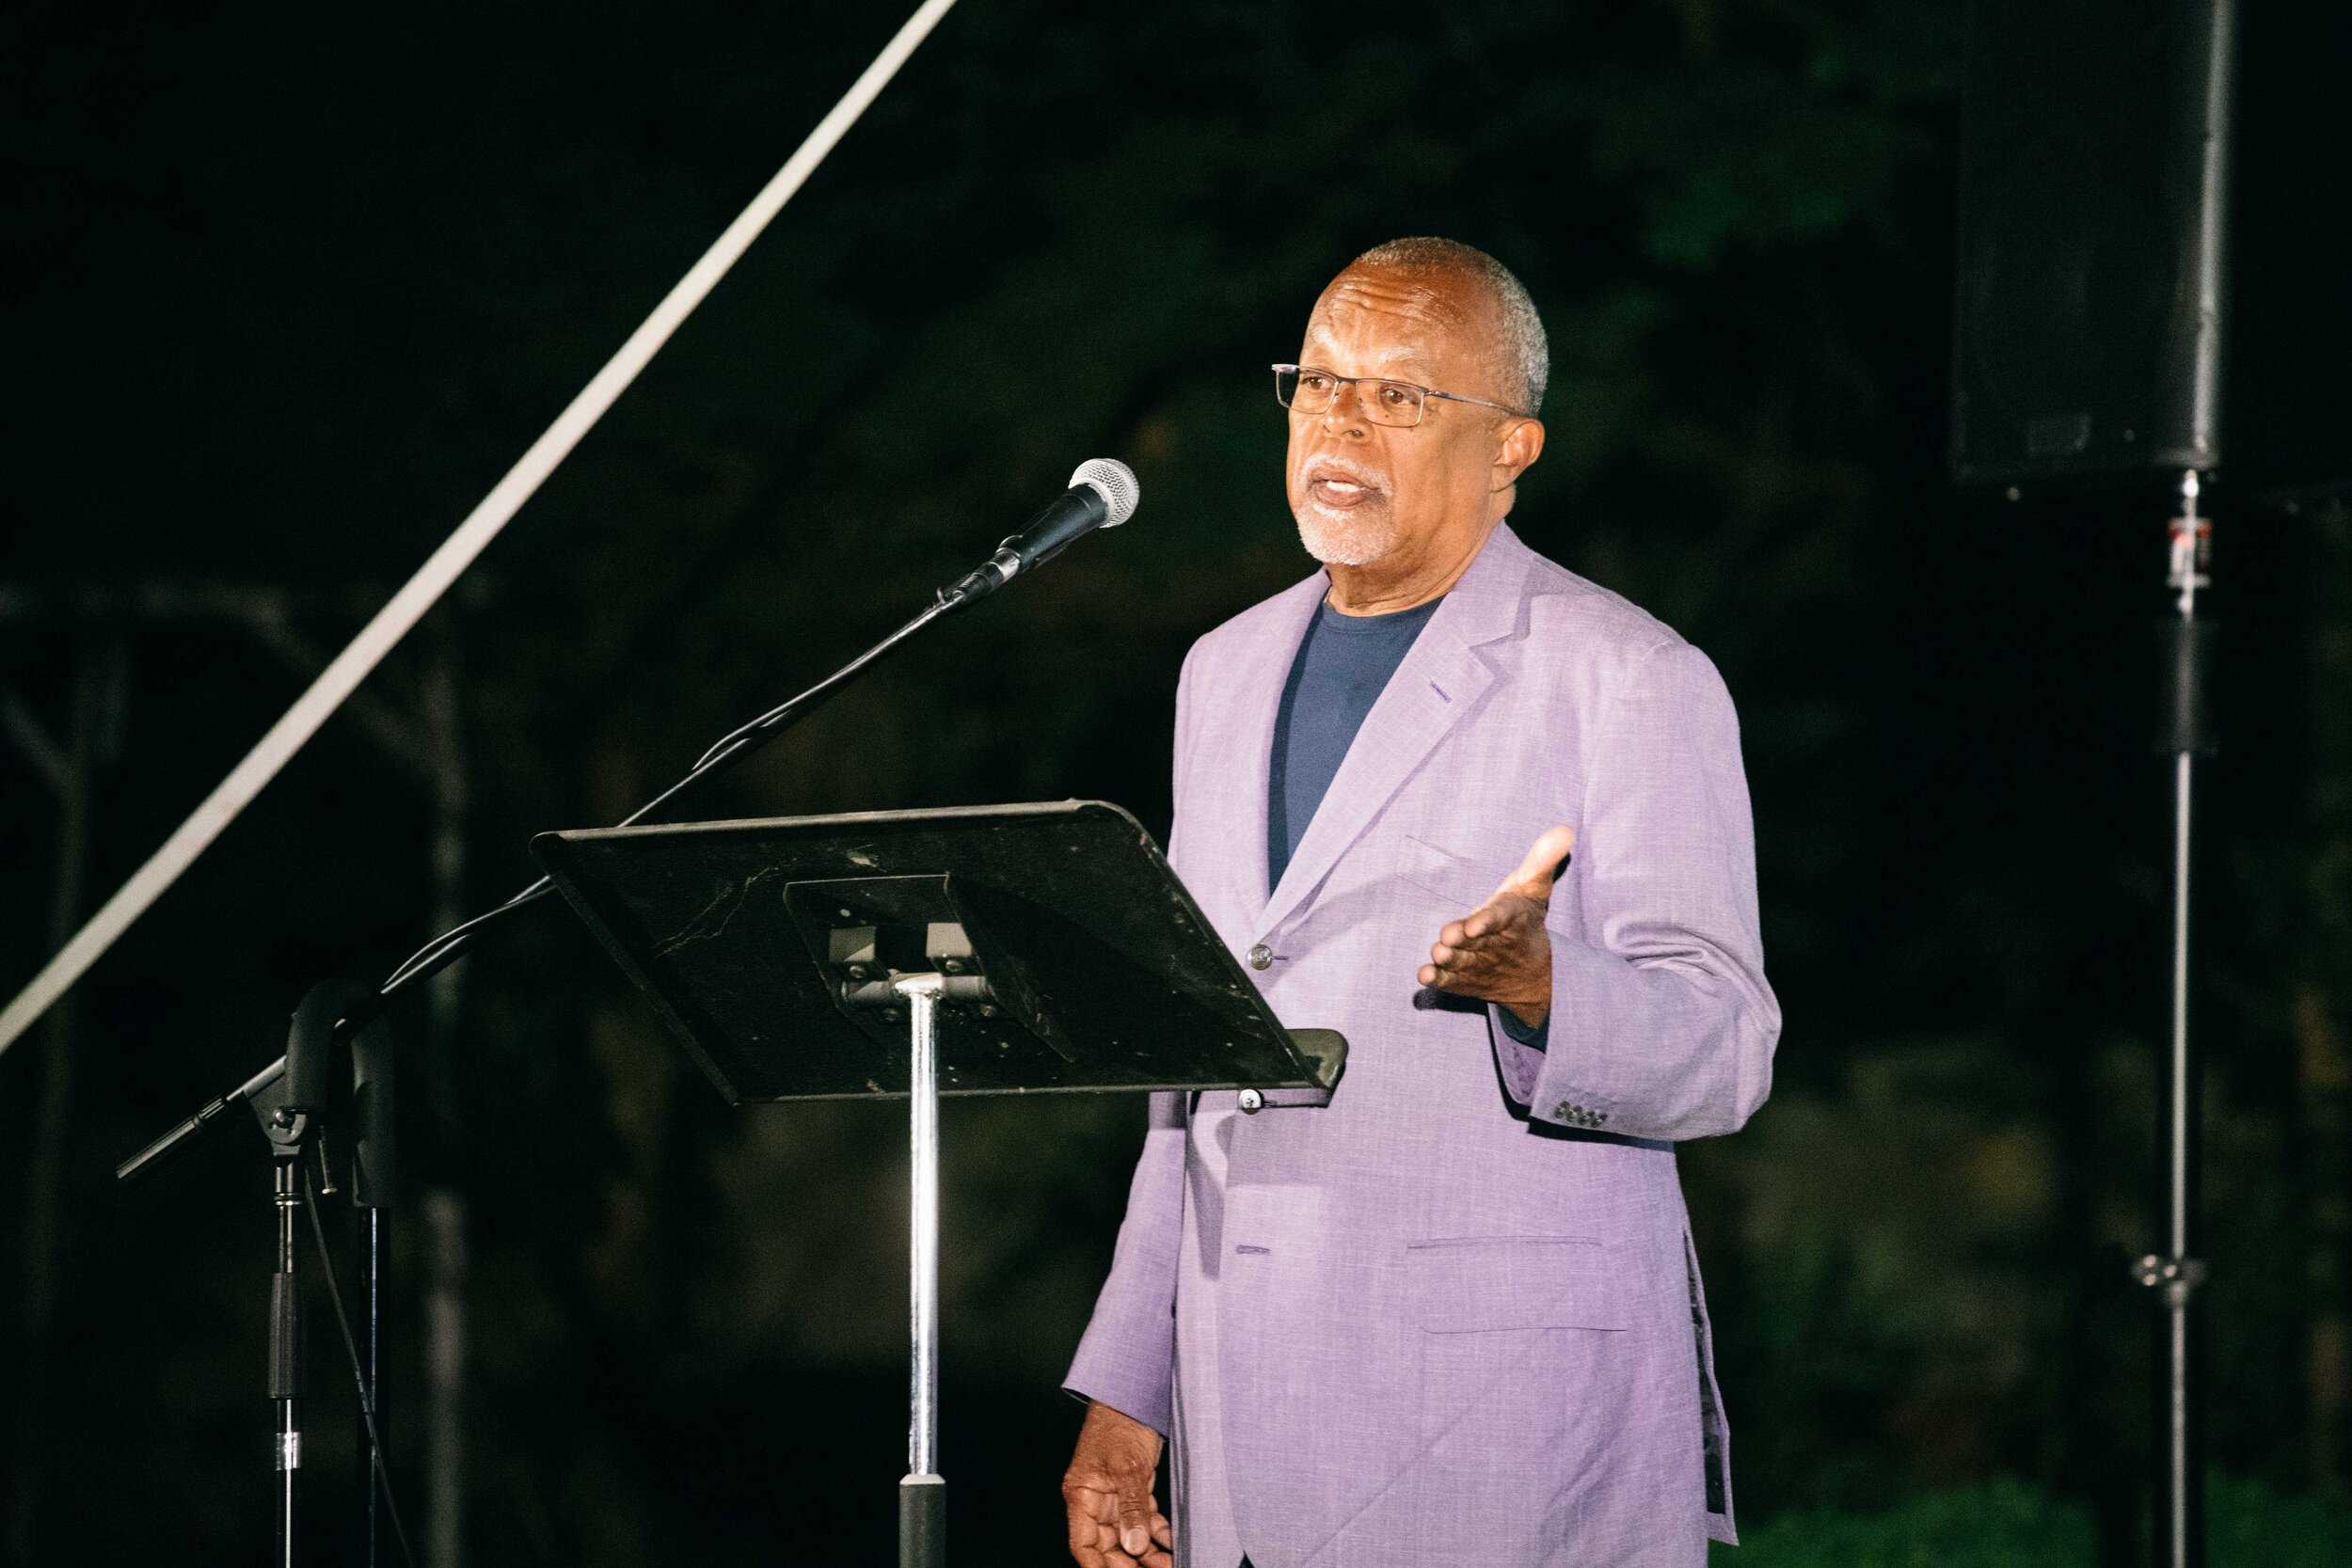 Henry Louis Gates, Jr., presents RECONSTRUCTION: AMERICA AFTER THE CIVIL WAR. Photo by Reece Robinson.